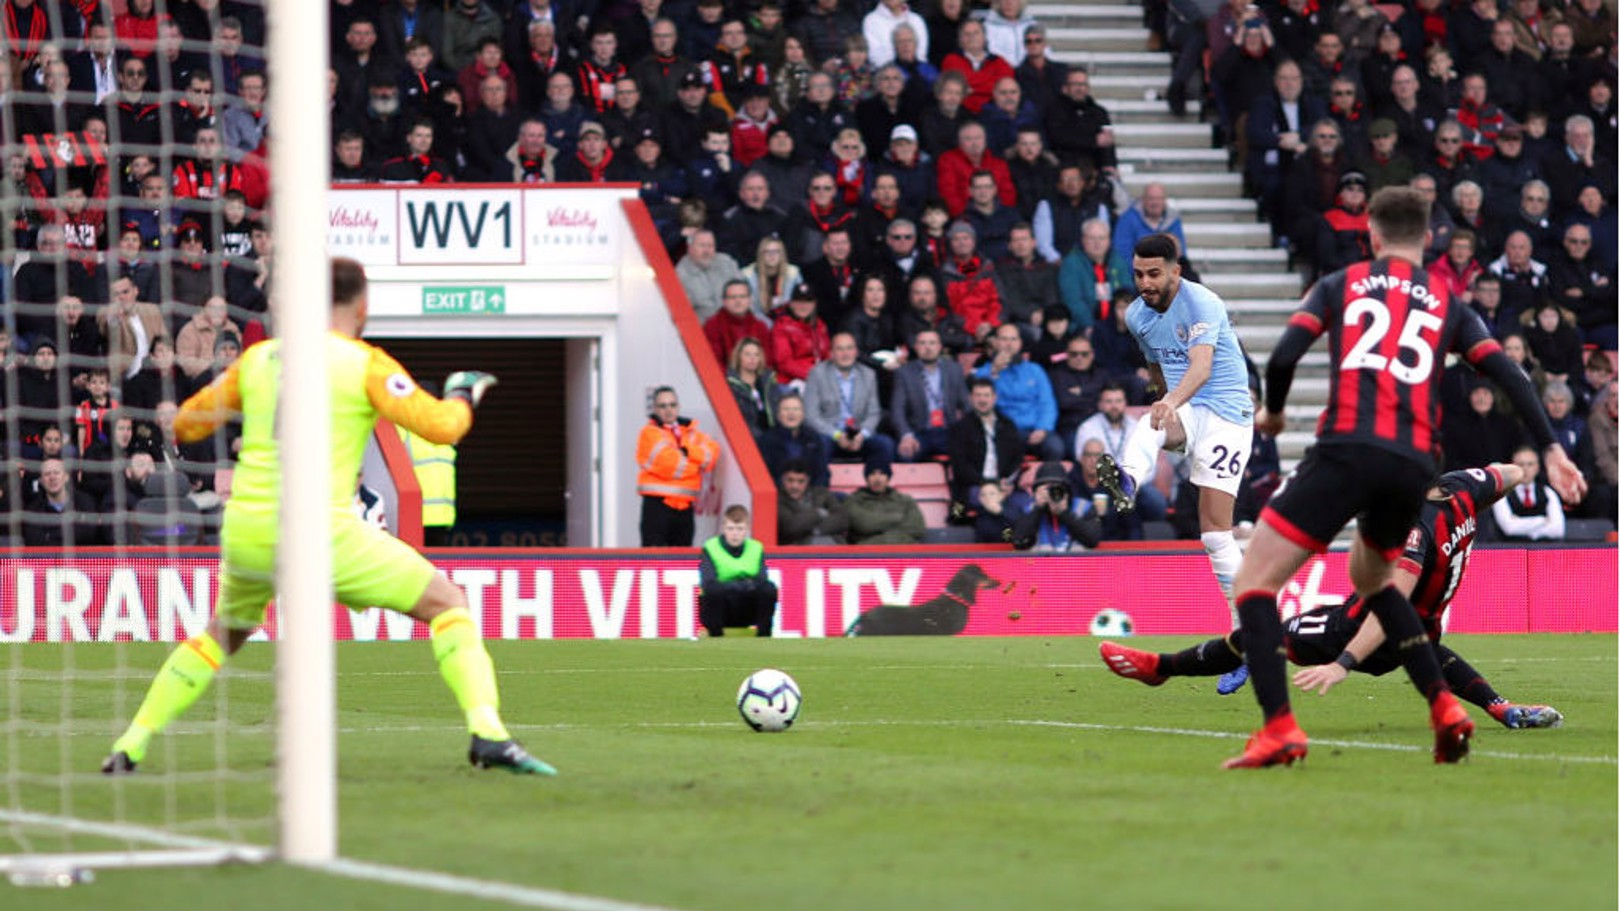 SUPER SUB: Riyad Mahrez breaks the deadlock with a close-range shot early in the second half